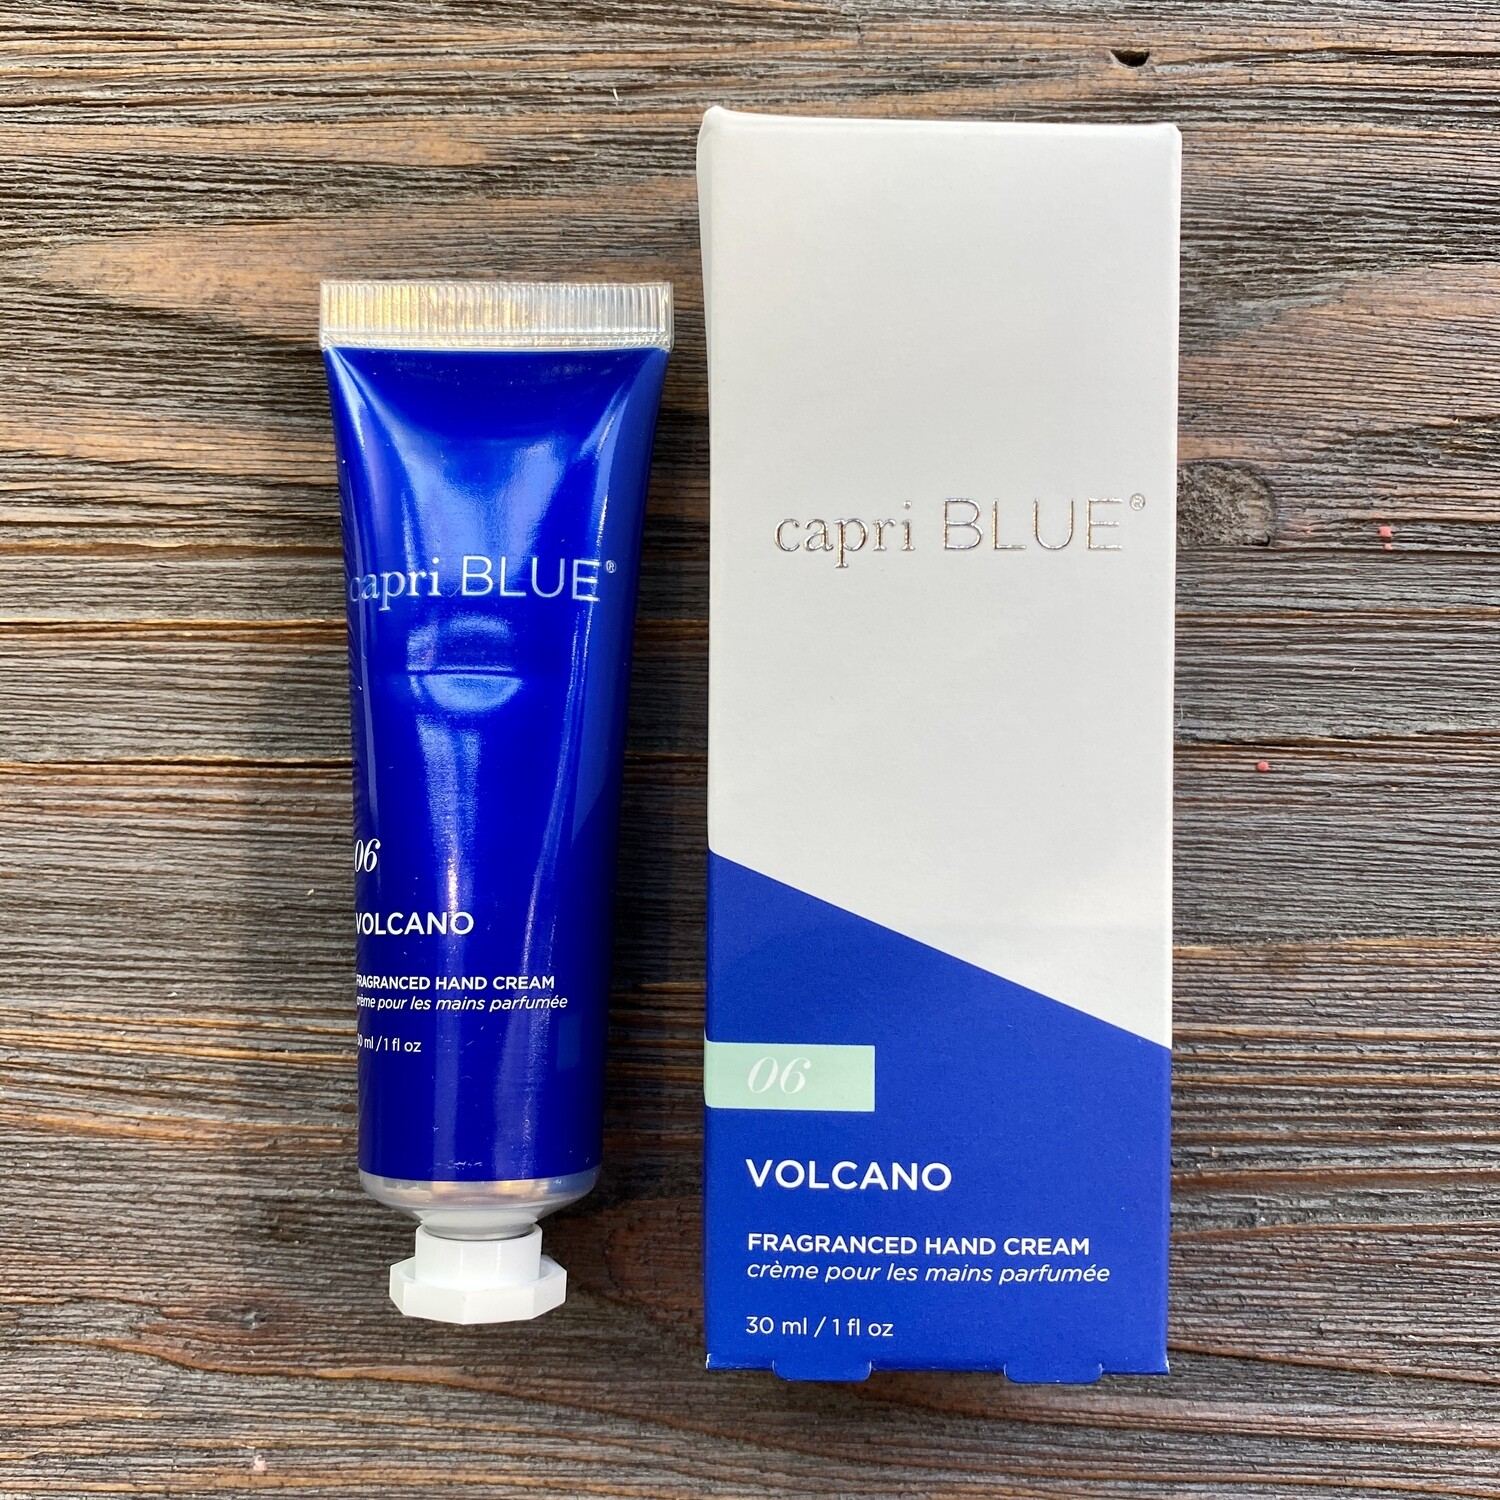 Capri Blue 1oz Hand Cream